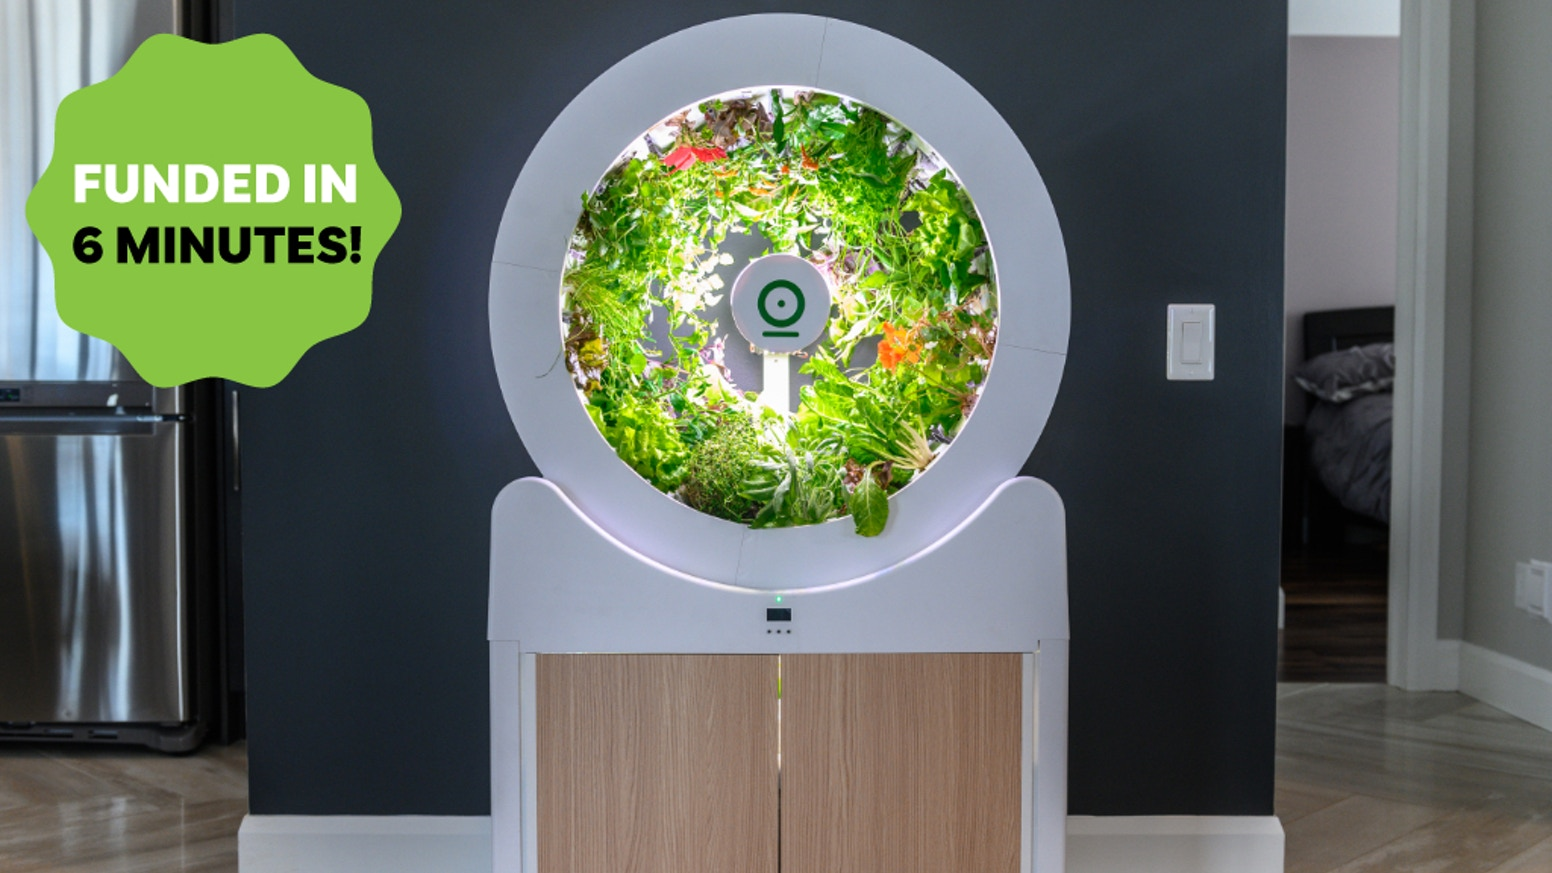 The perfect indoor gardening system - grows up to 90 fruits and veggies. Quick and easy, fully automatic and beautifully designed.